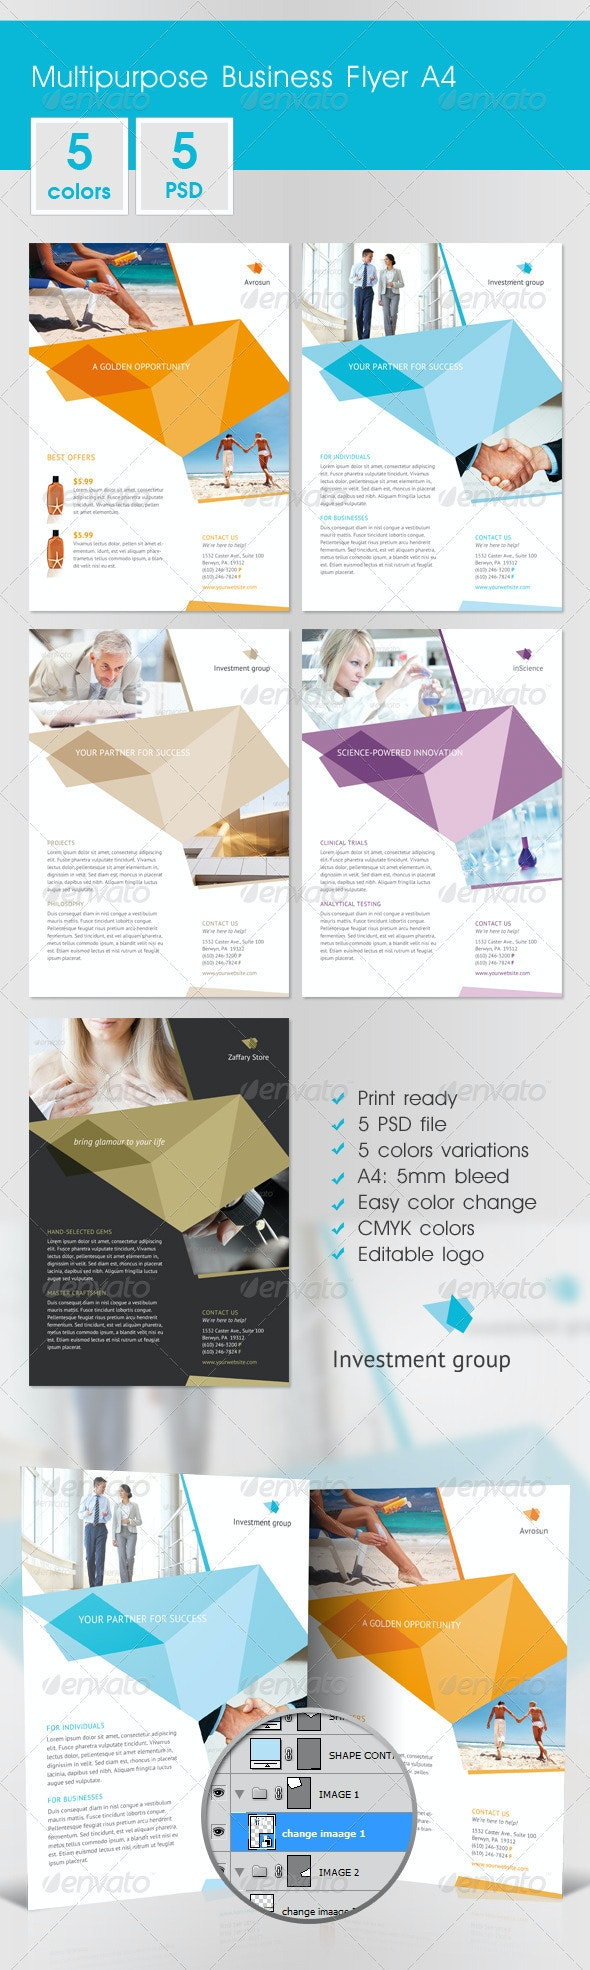 Multipurpose Business Flyer A4 - Corporate Flyers